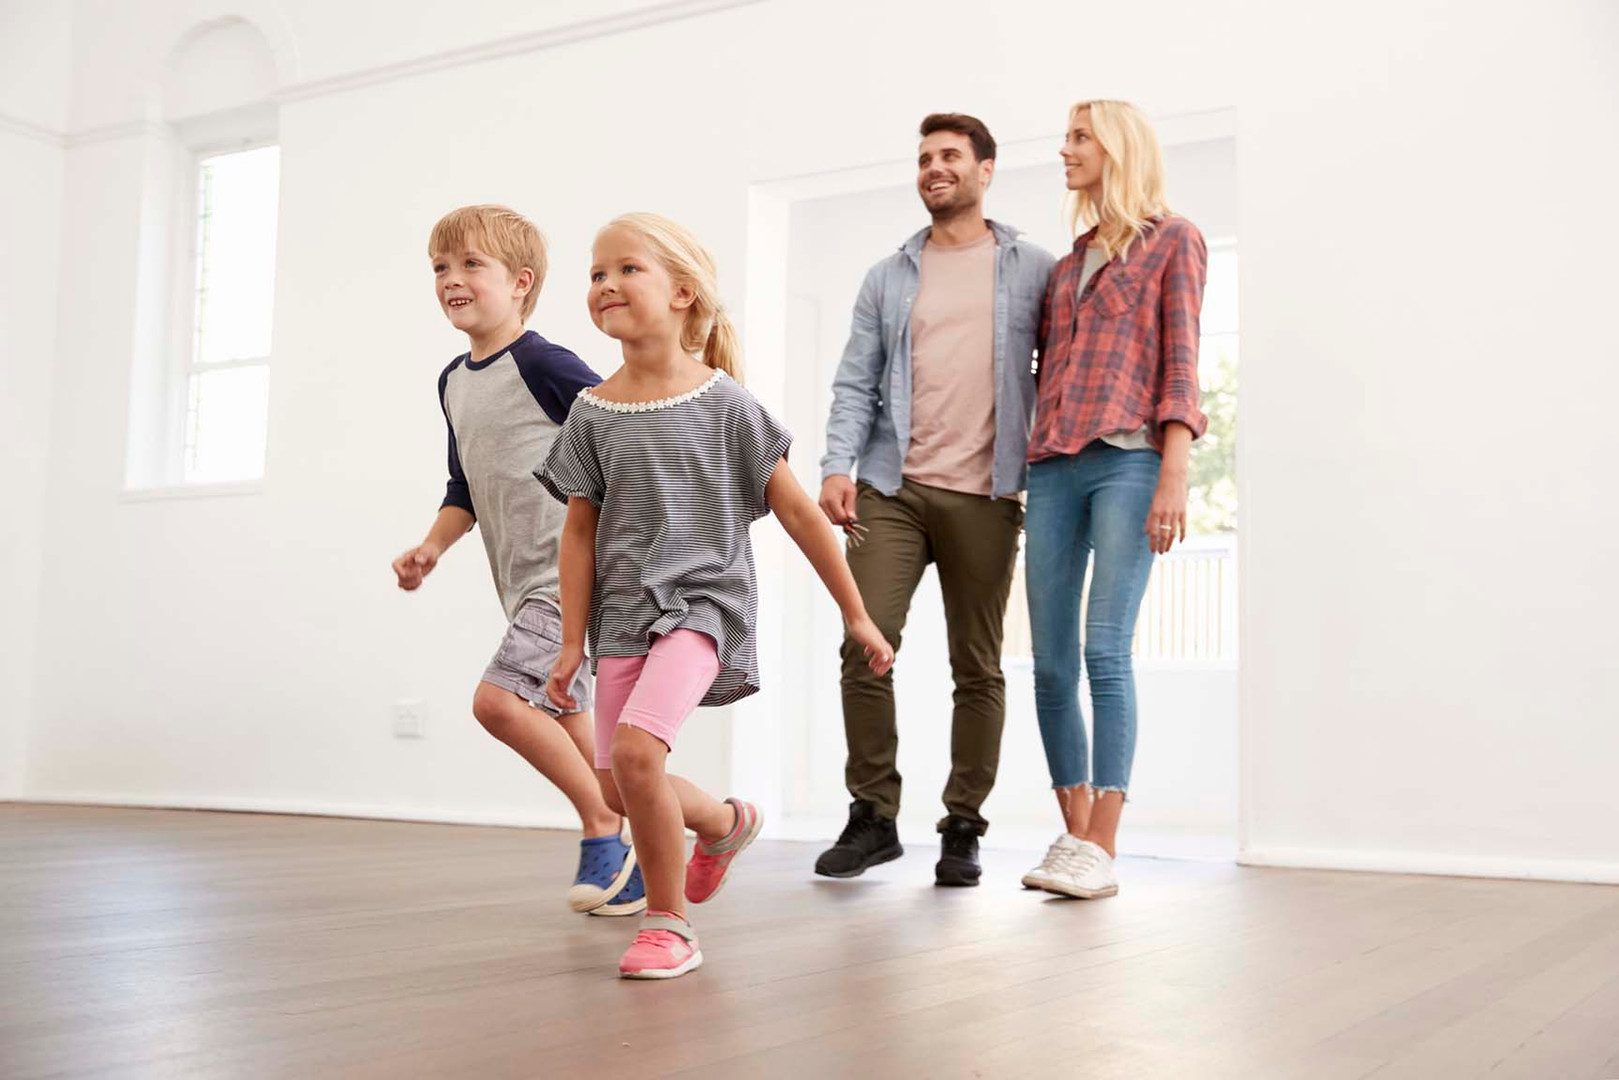 excited-family-explore-new-home-on-movin